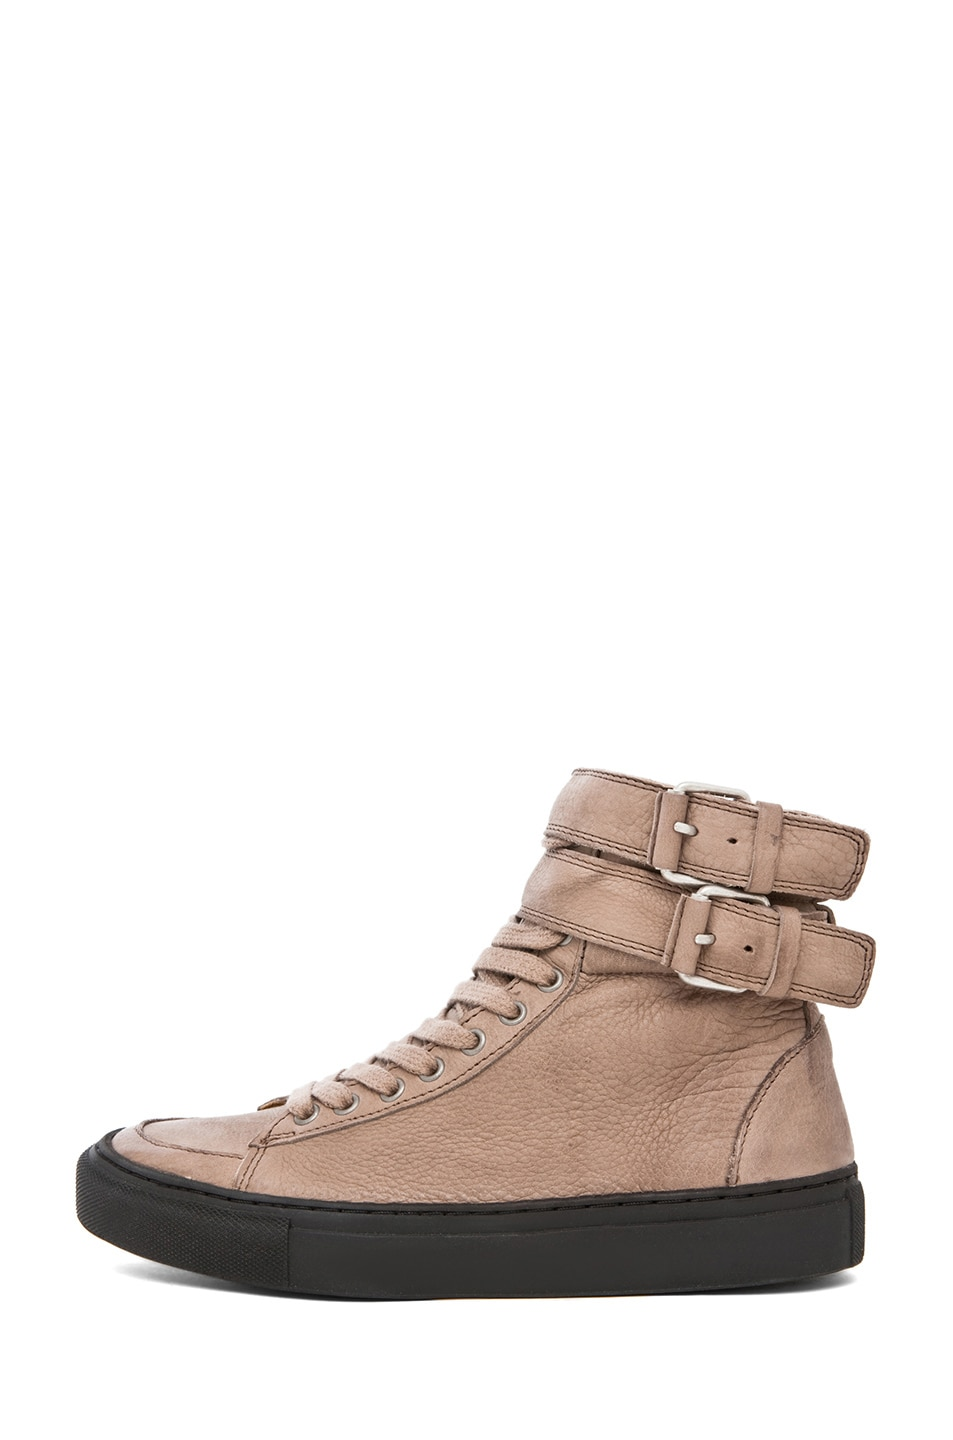 Image 1 of SILENT DAMIR DOMA Snook Sneaker in Sand